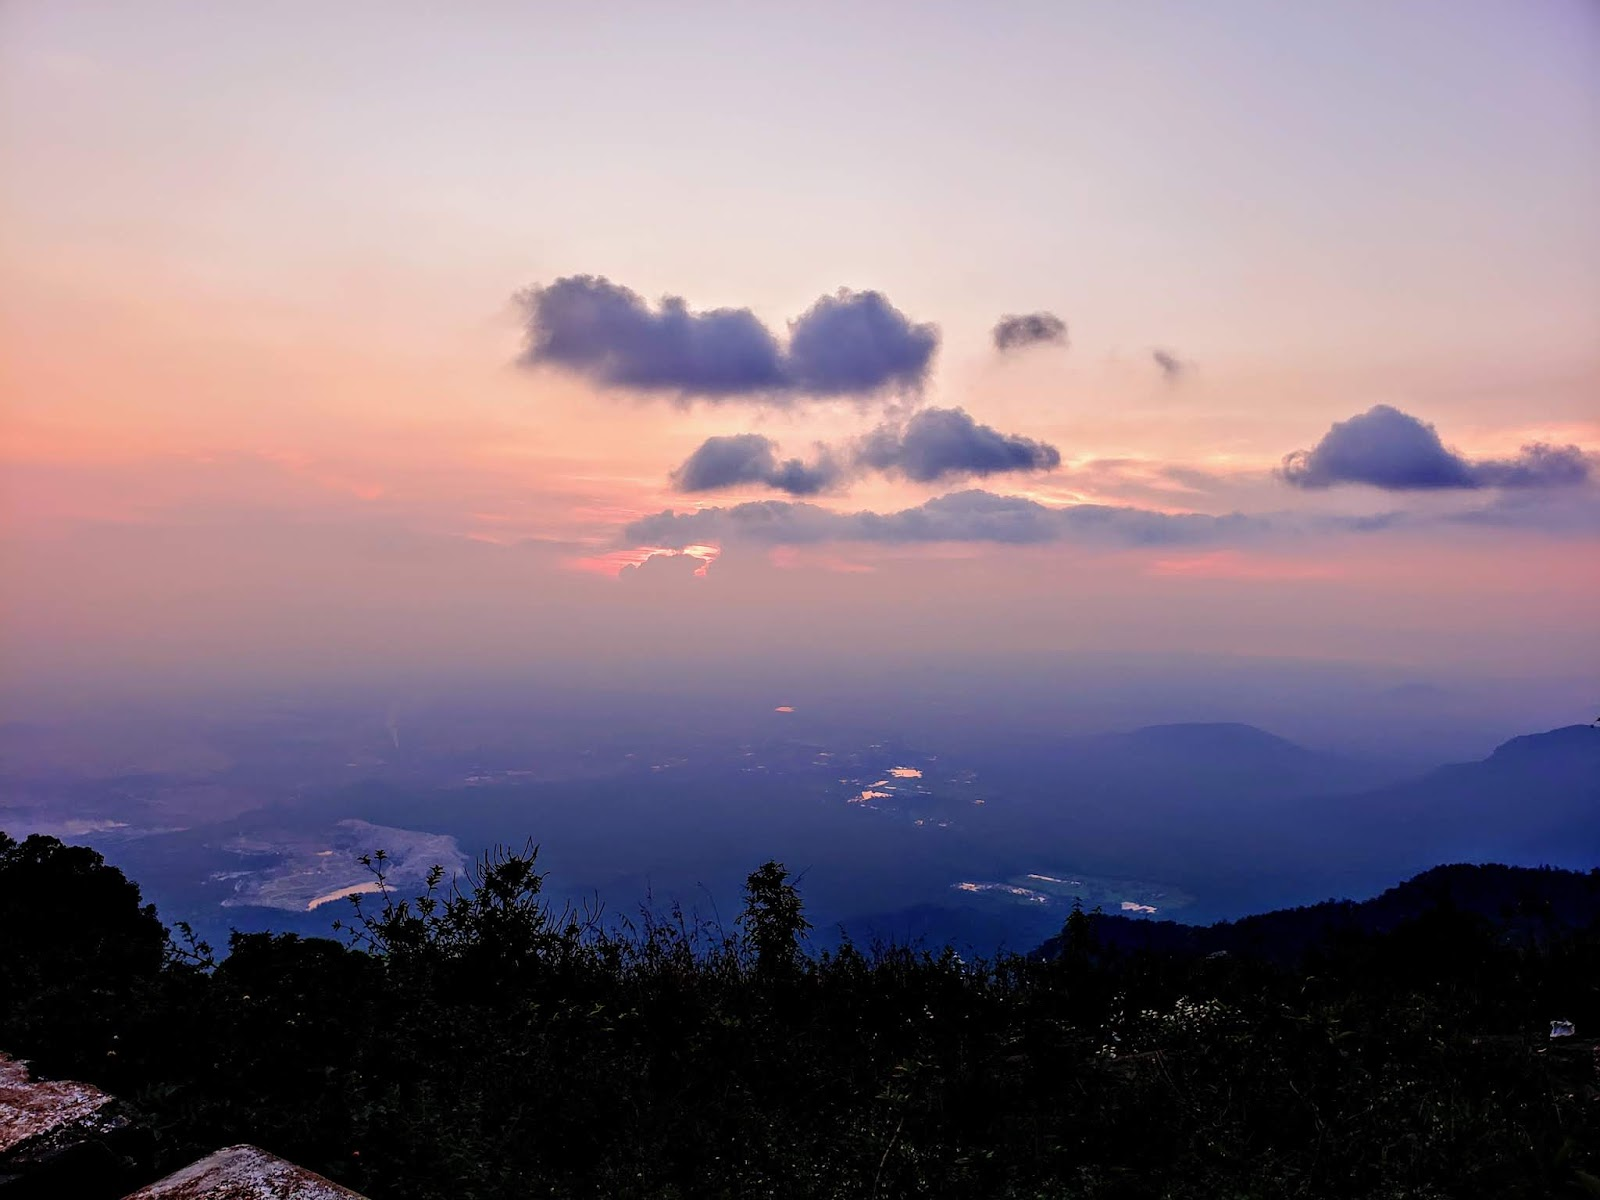 Cloudy Sunset from Gents Seat, Yercaud